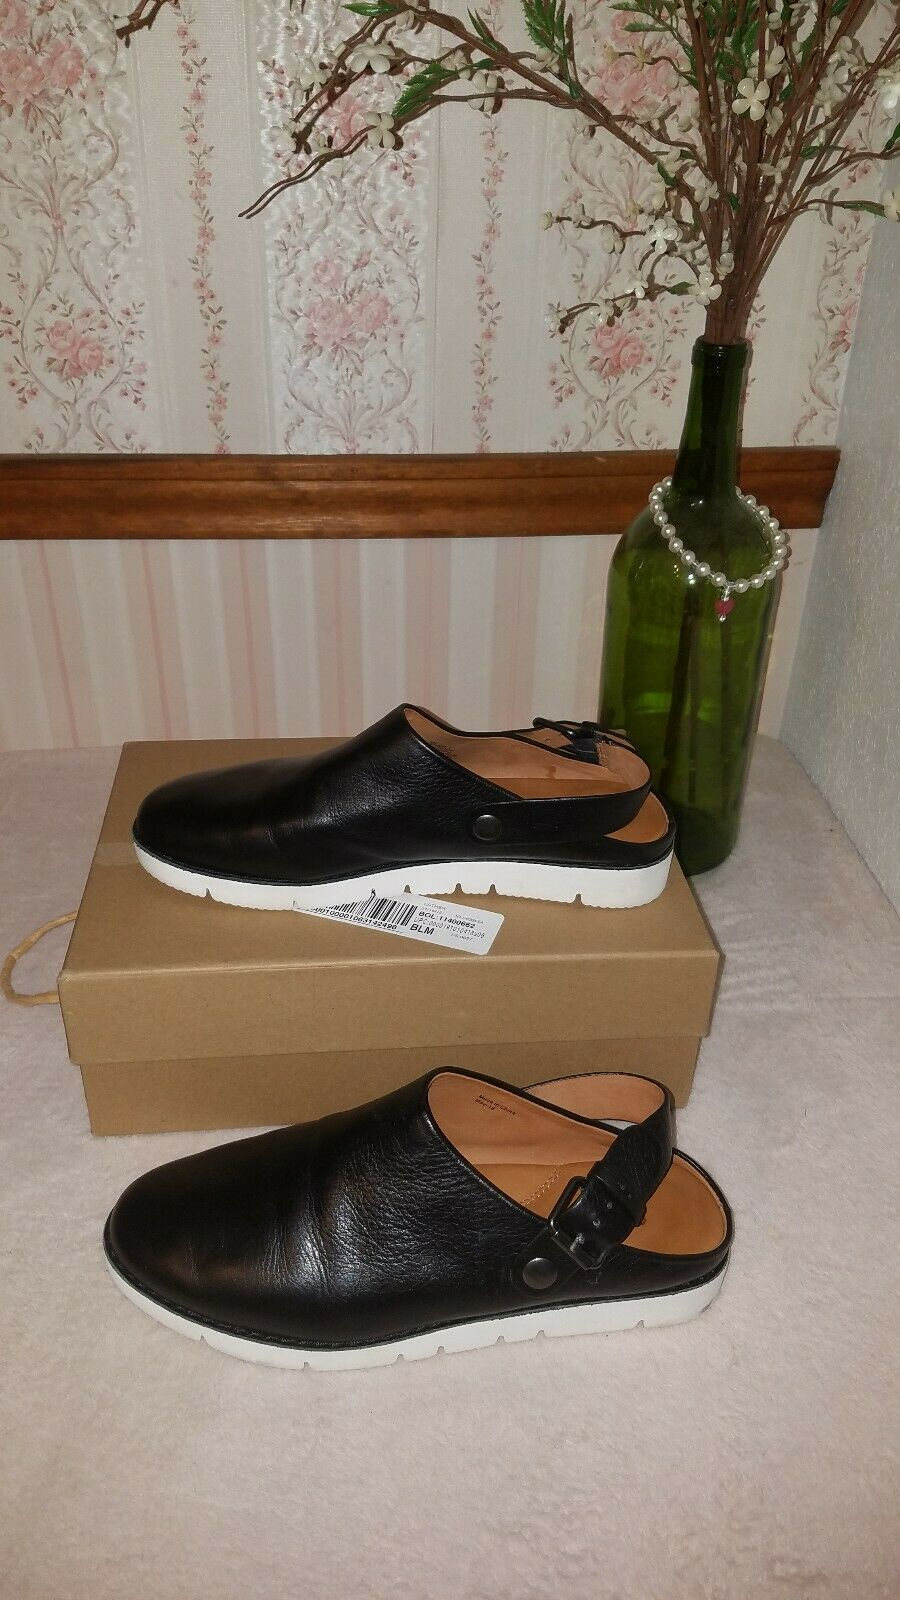 Gentle Souls Esther Clog Congreenible Leather Sneaker Mules Black size 8